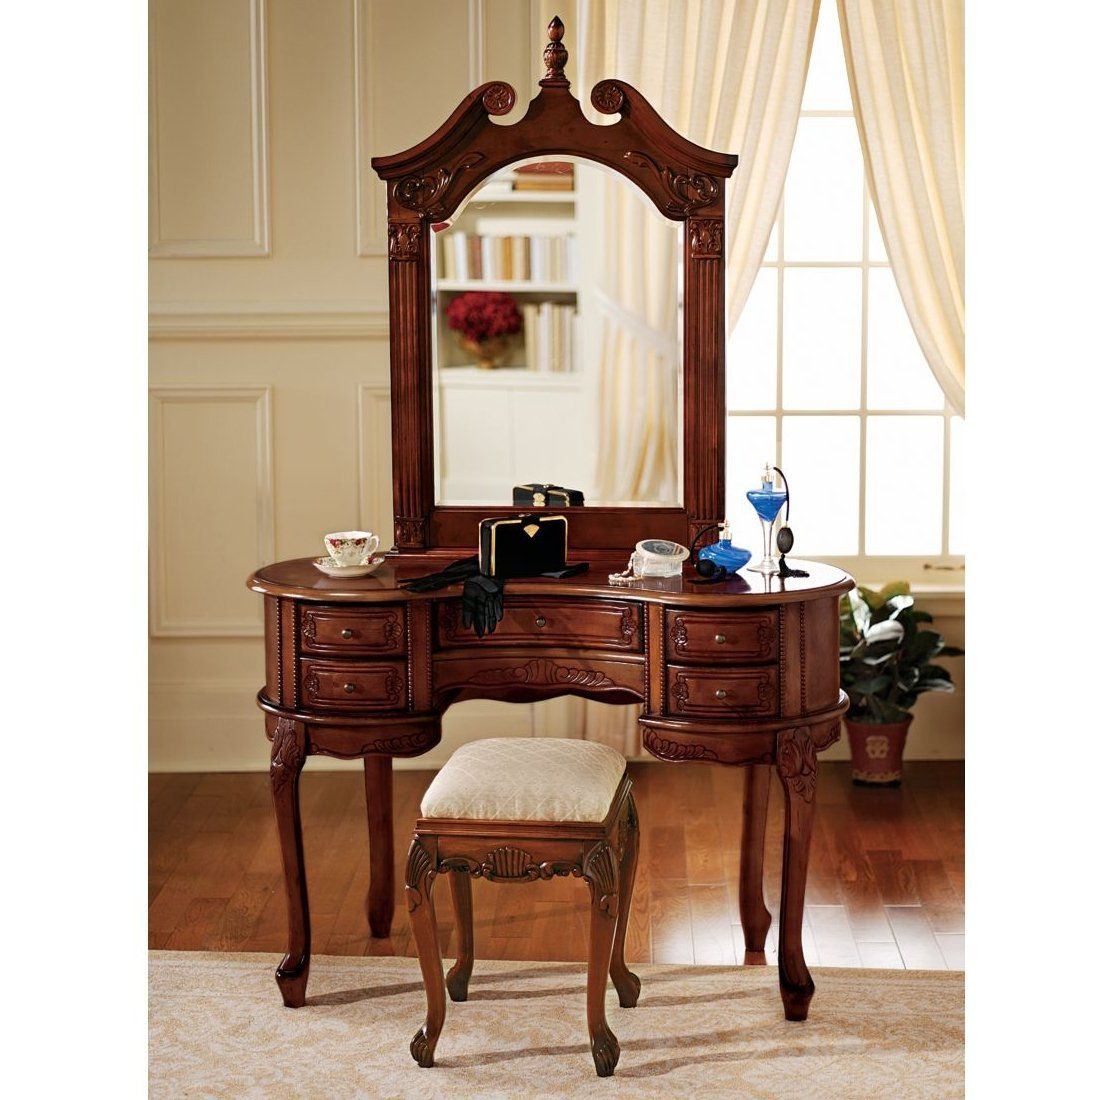 Design Toscano AE94543 The Queen Anne Dressing